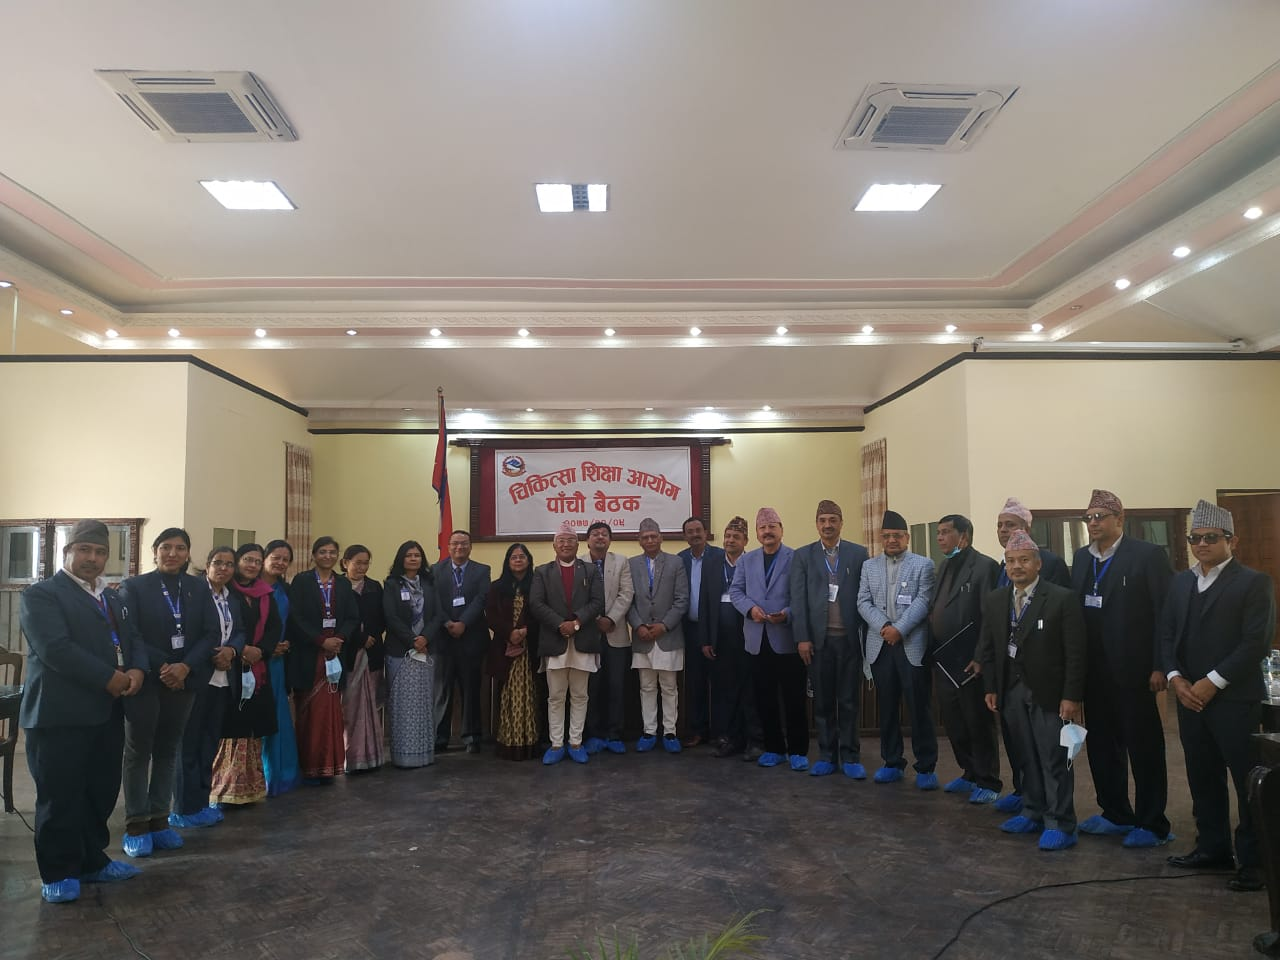 5th meeting of the Medical Education Commission's task force formed to recommend the fees of MBBS held at the PM's residence, in Baluwatar, Kathmandu, on Saturday, January 23, 2021. Photo: Ishwor Dhakal/THT